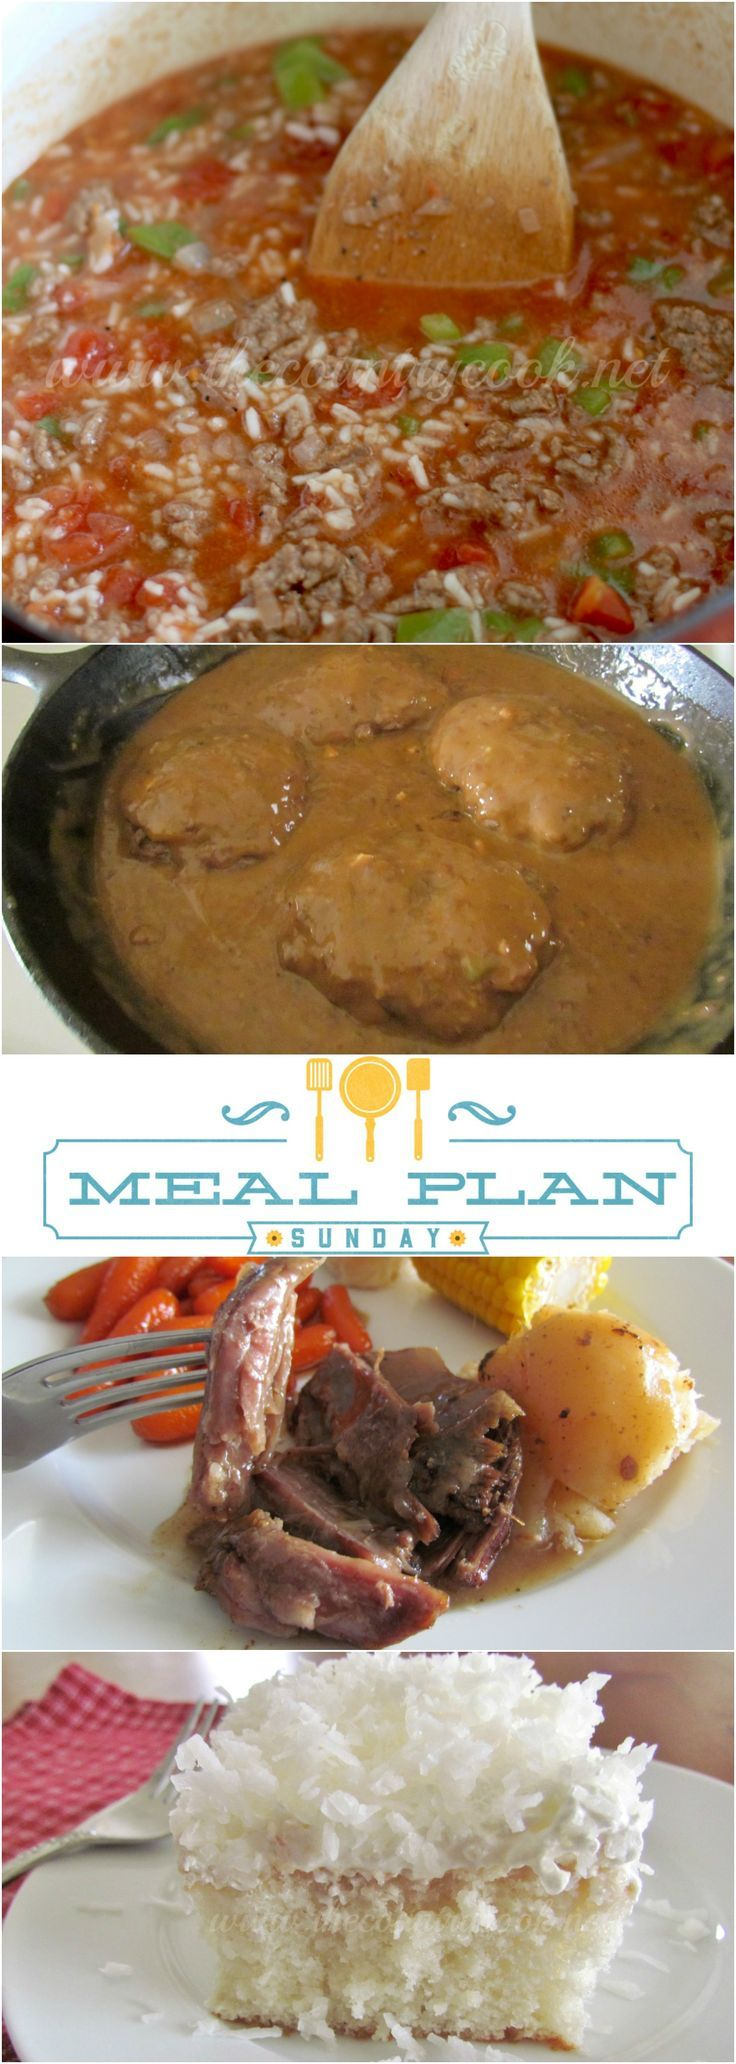 Meal Plan Sunday featured recipes include: Hamburger Steaks and Gravy, Baked Spaghetti, Coconut Poke Cake, Easy Pot Roast, Stuffed Pepper Soup & more!